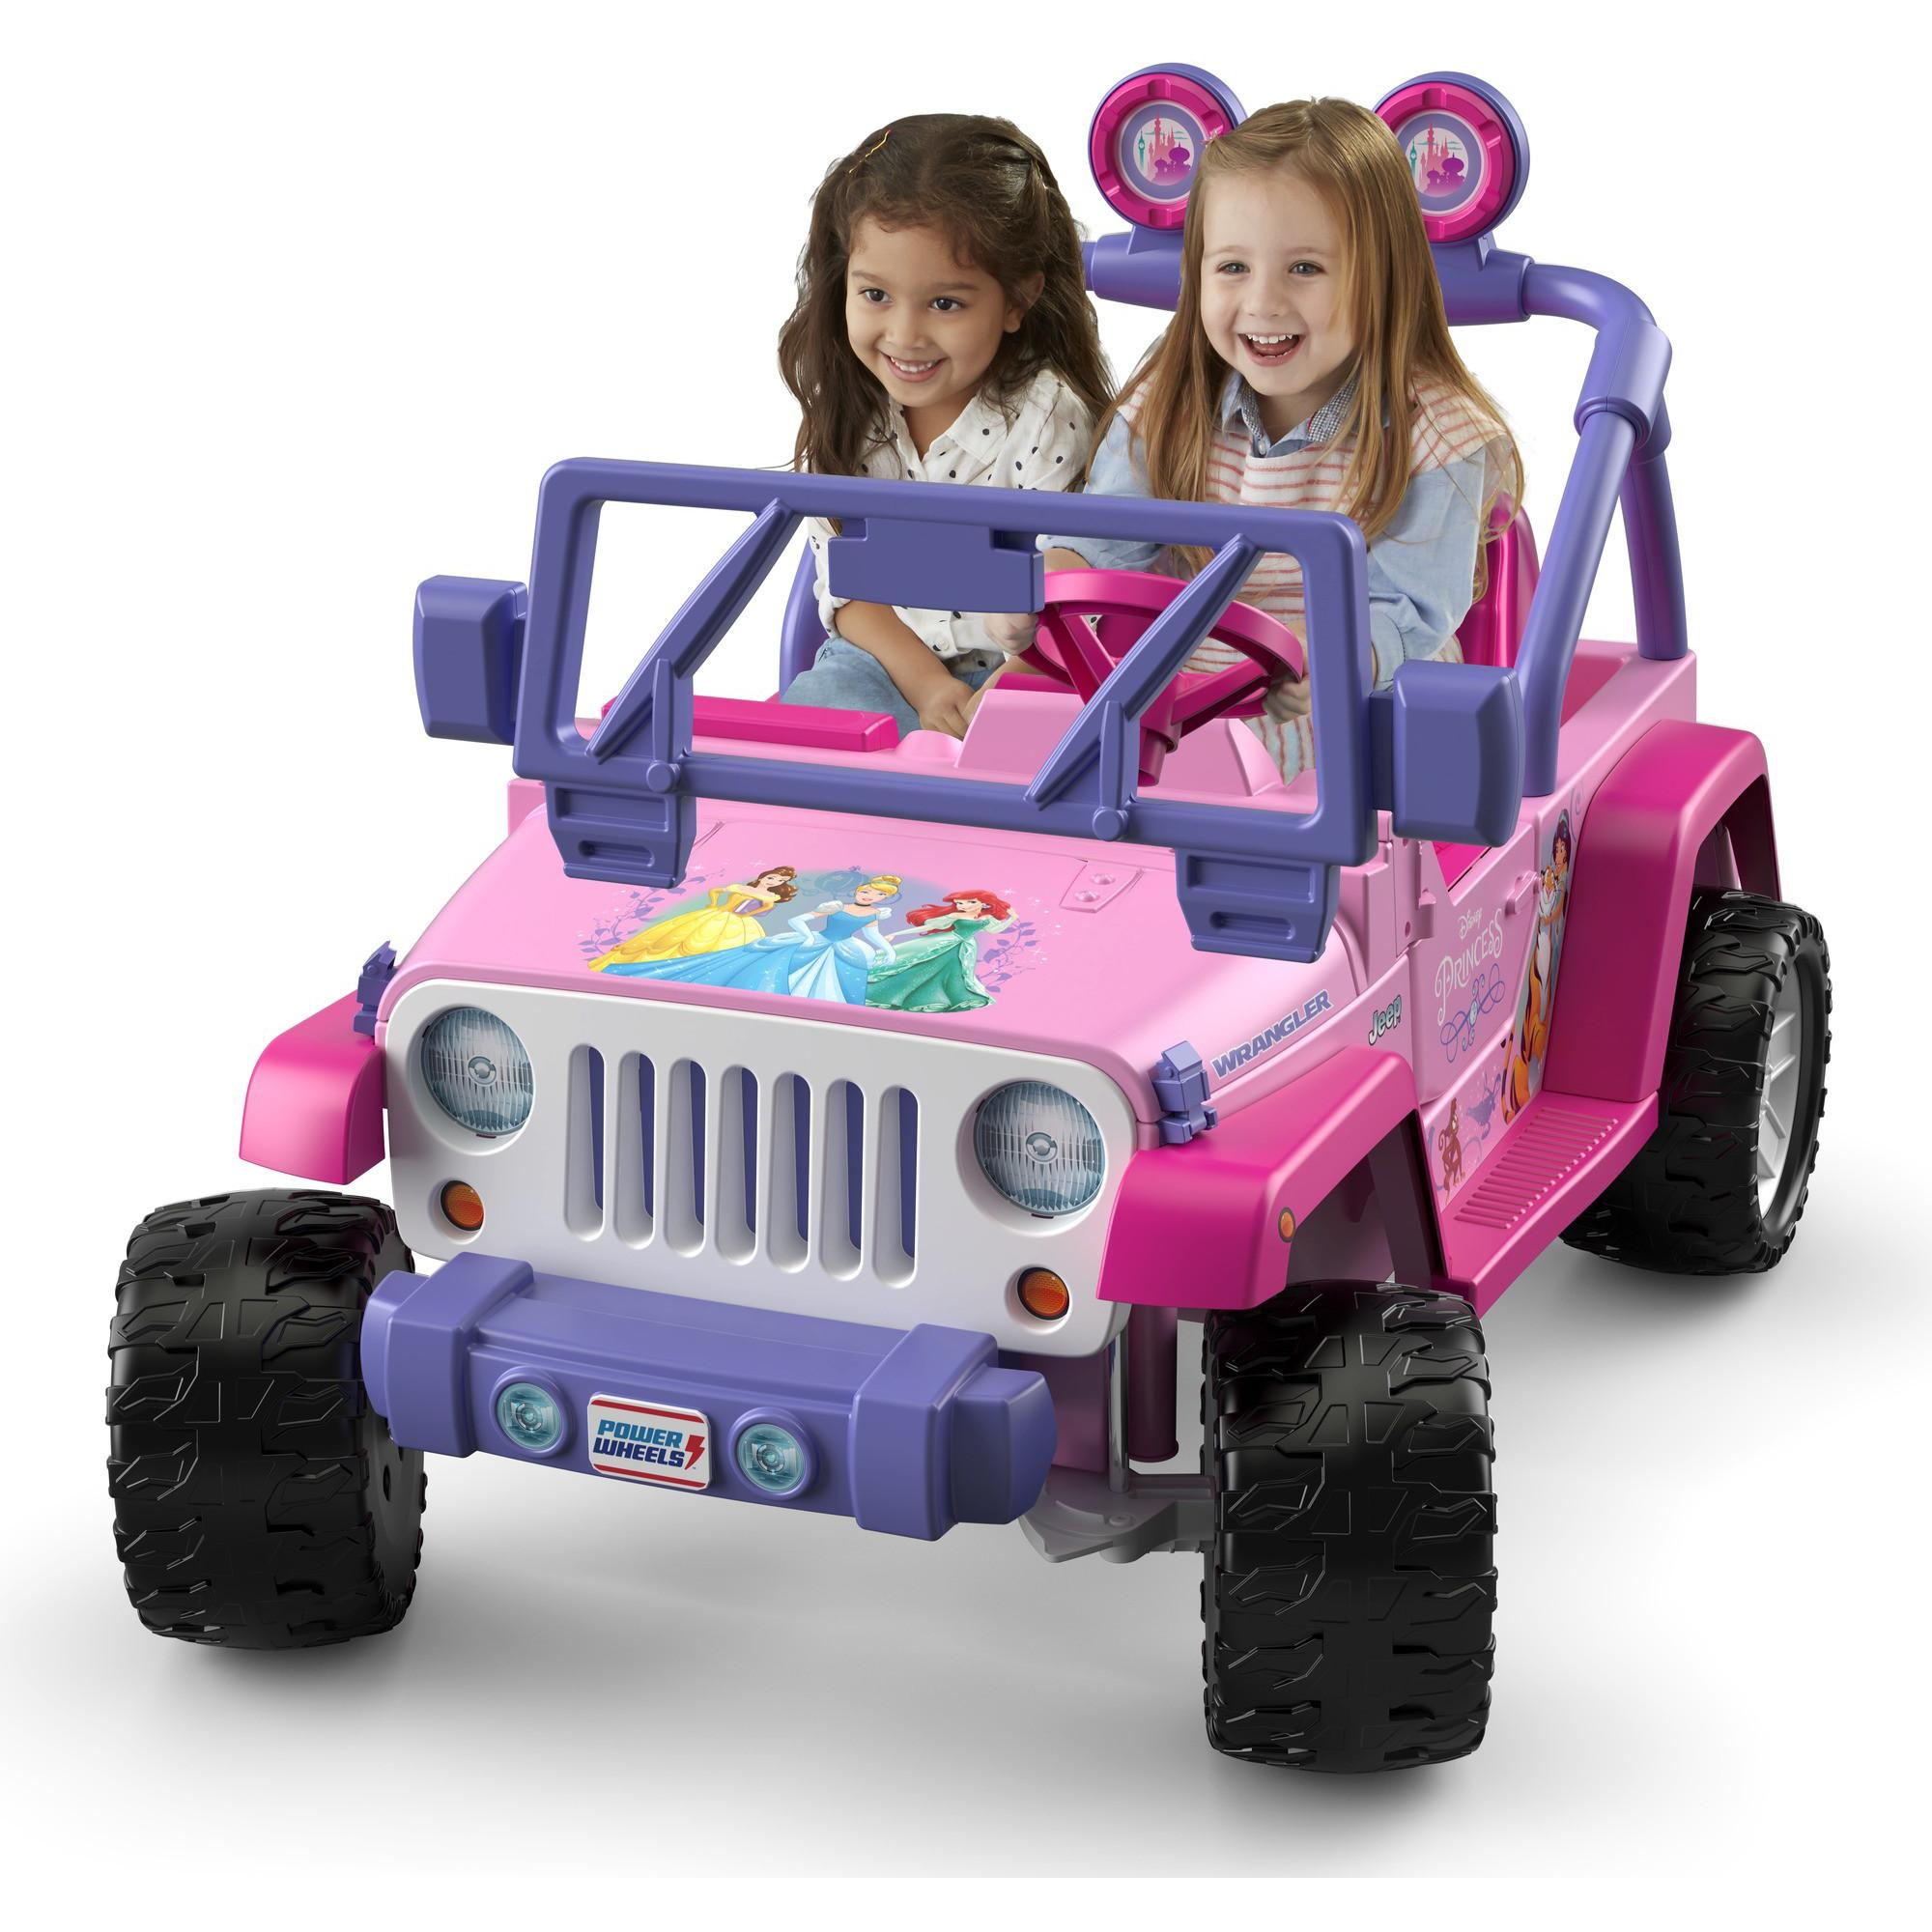 Power Wheels Disney Princess Jeep Wrangler Ride-On Vehicle, Pink